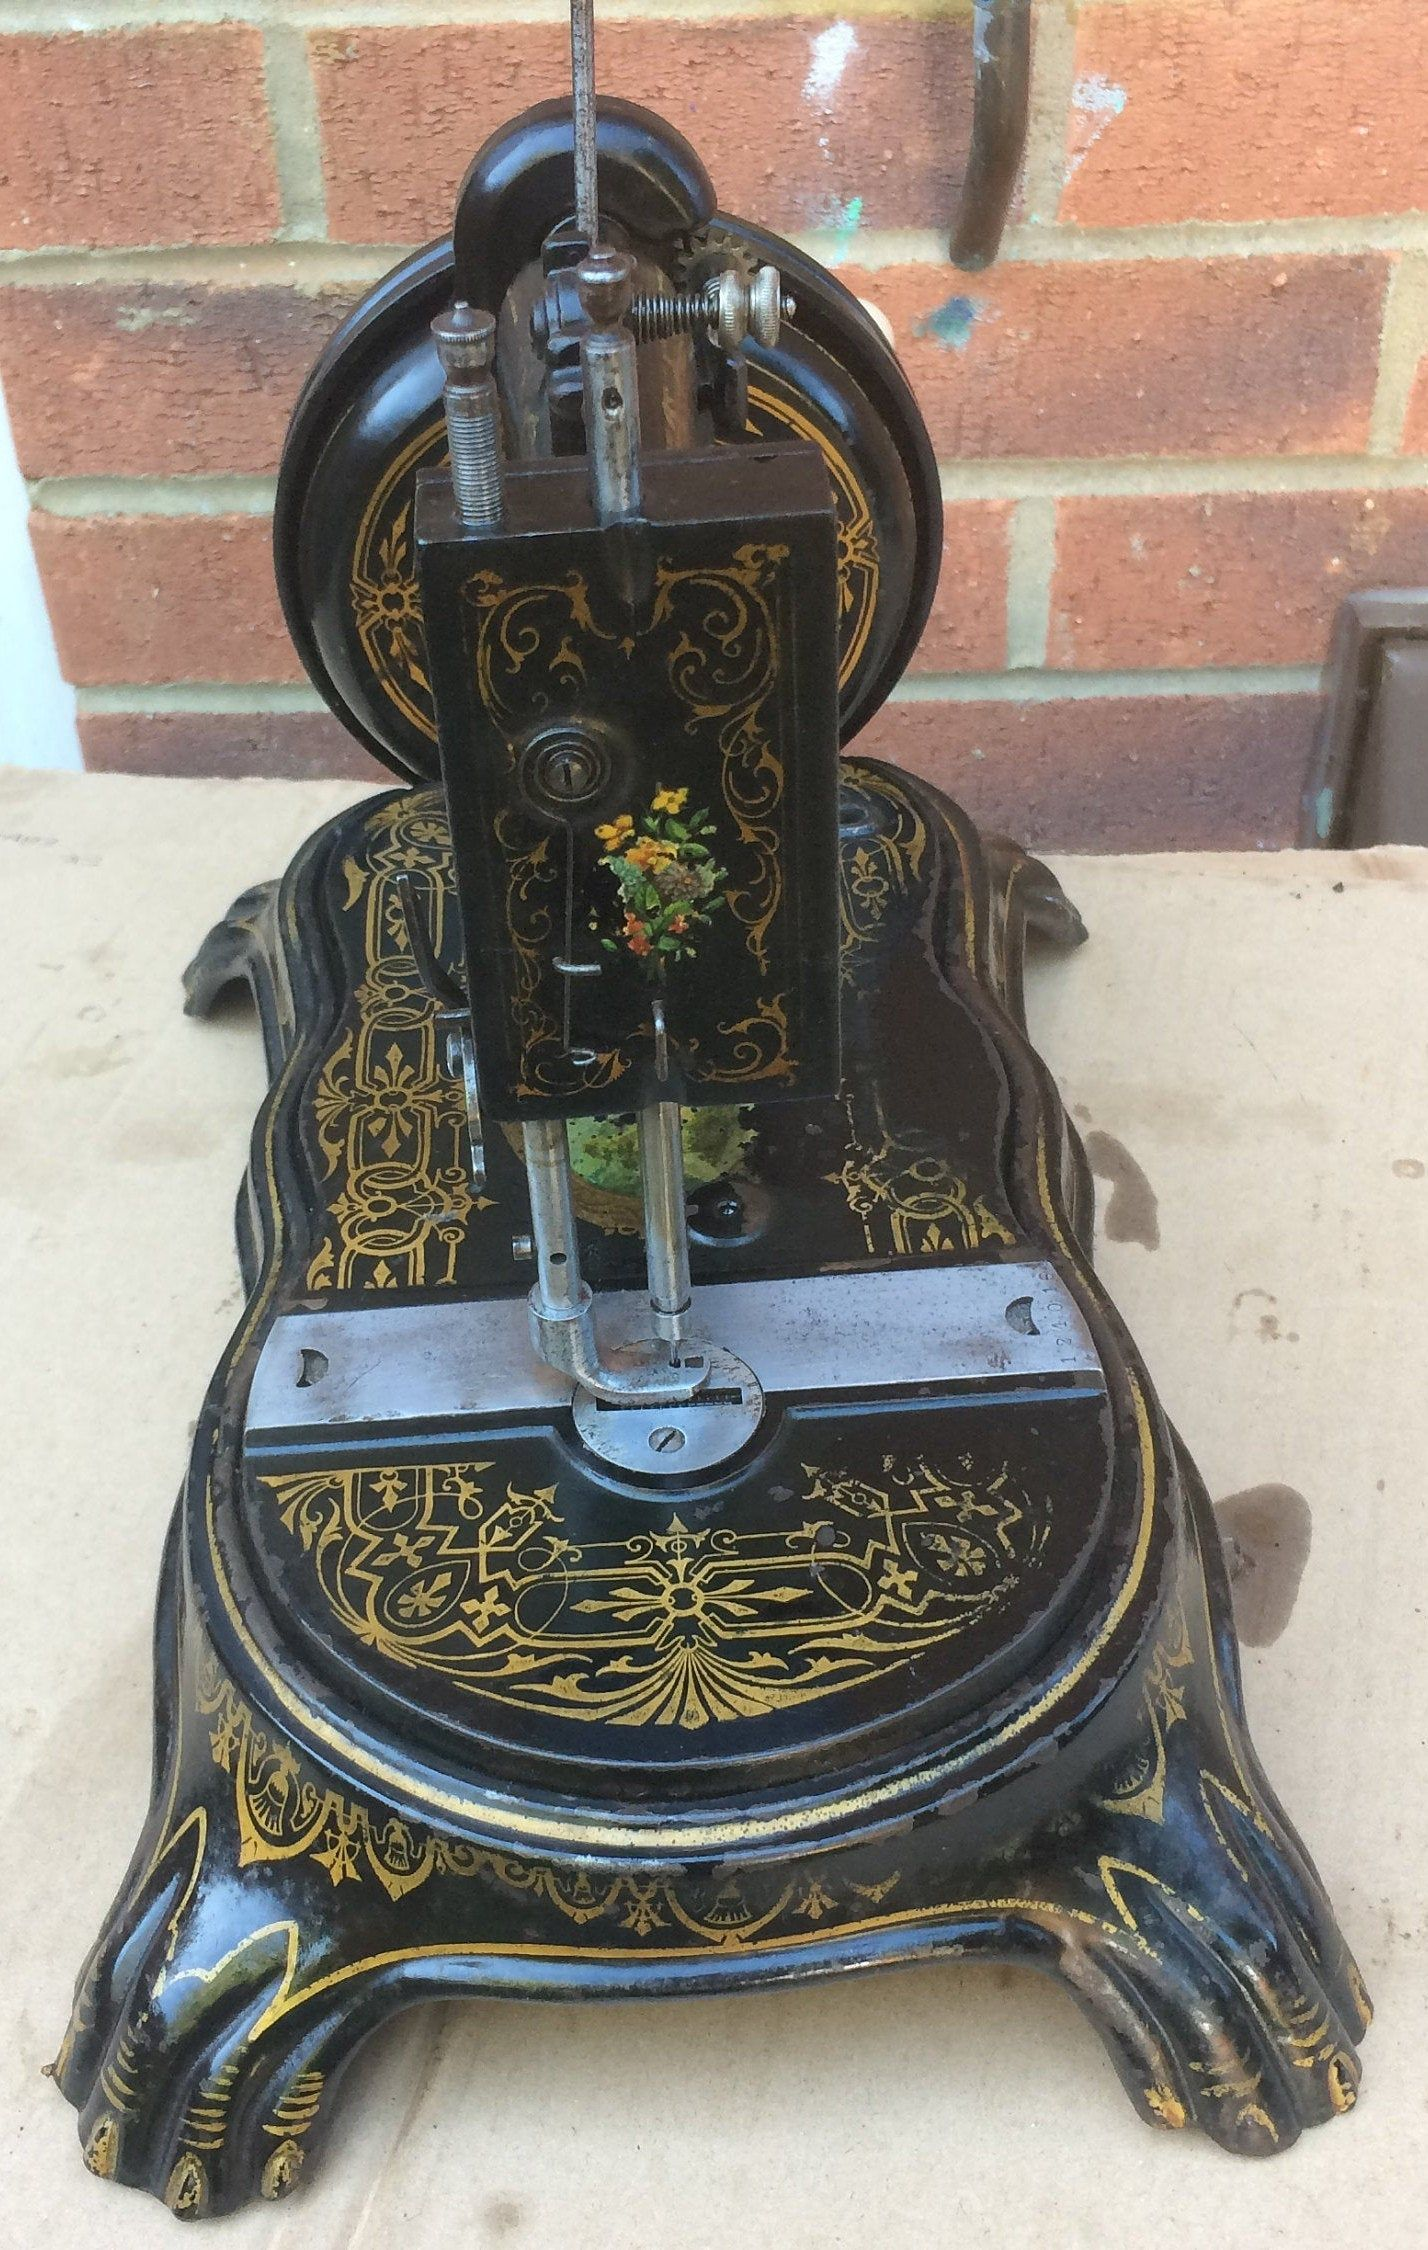 Antique C1890 American National Sewing Machine Vintage Collectable Sewing Machine Vintage Sewing Parts B Antique Sewing Machines Old Sewing Machines Antiques